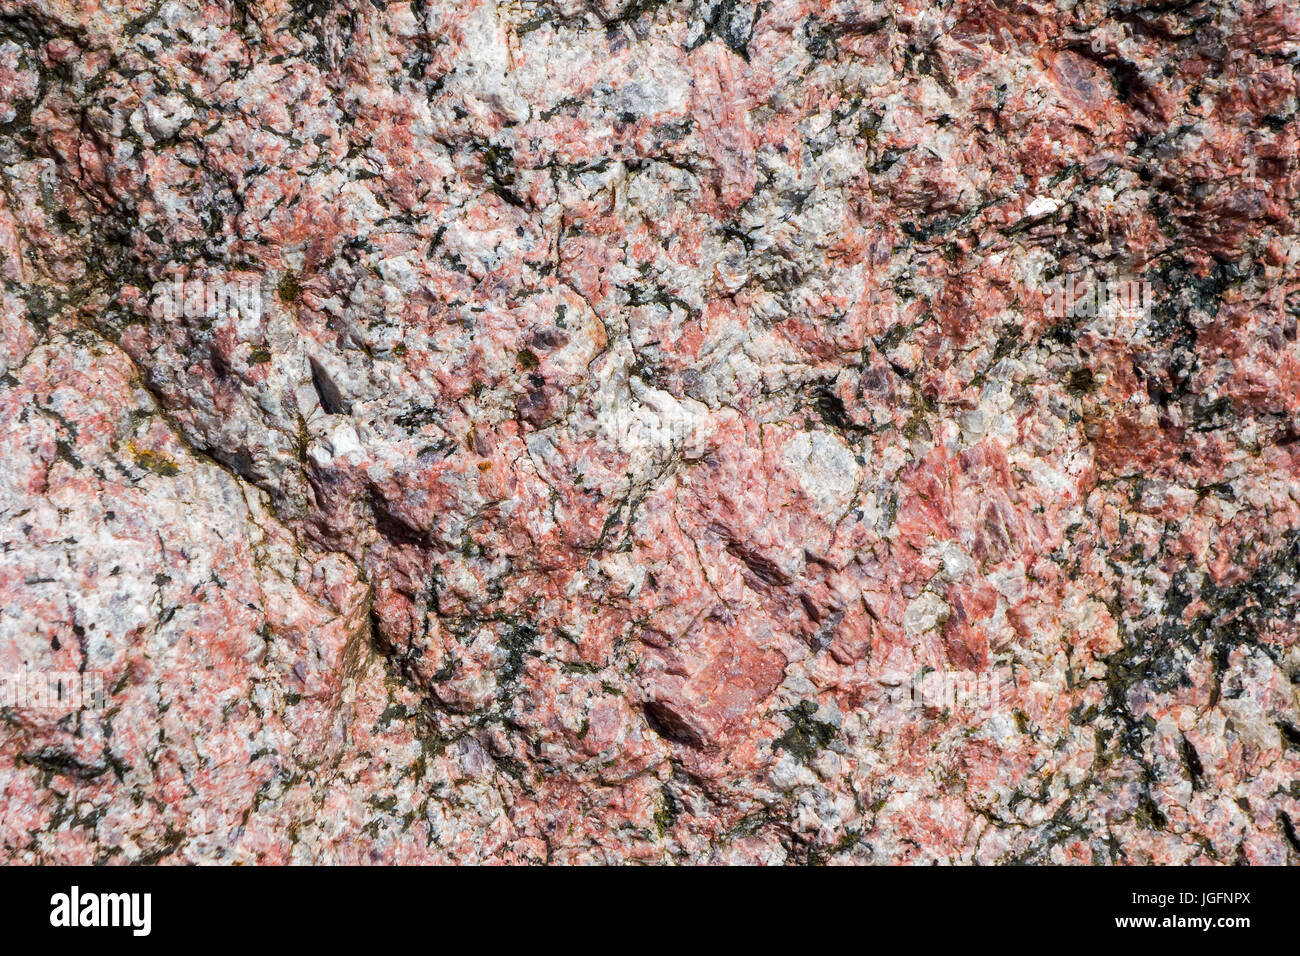 Pegmatite, holocrystalline, intrusive igneous rock, showing grain structure and texture - Stock Image